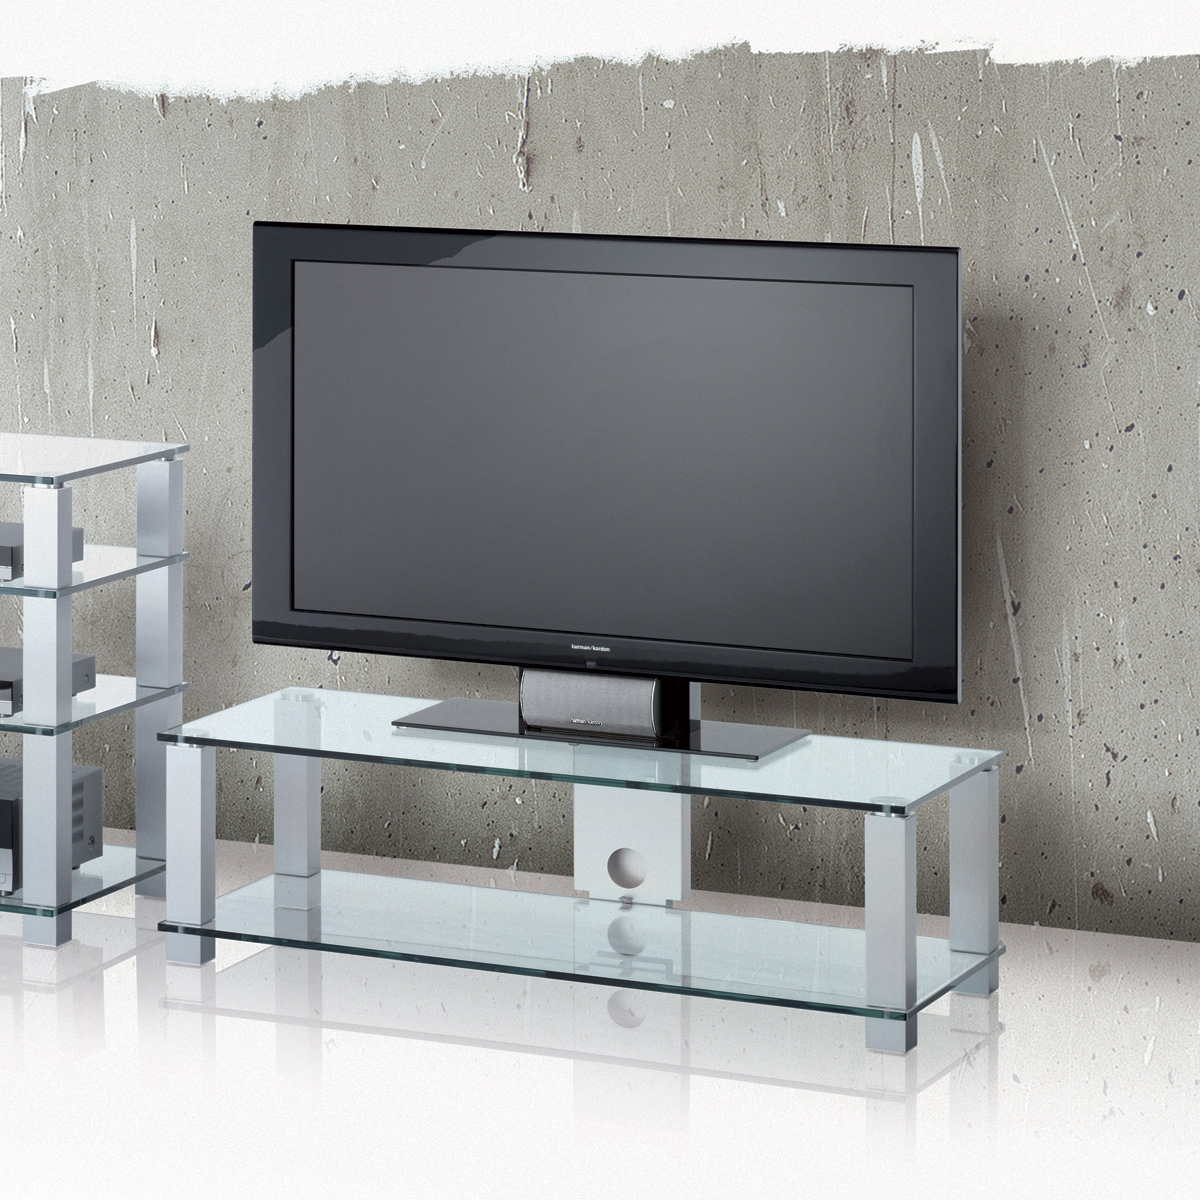 spectral high end tv m bel und hifi m bel guide. Black Bedroom Furniture Sets. Home Design Ideas